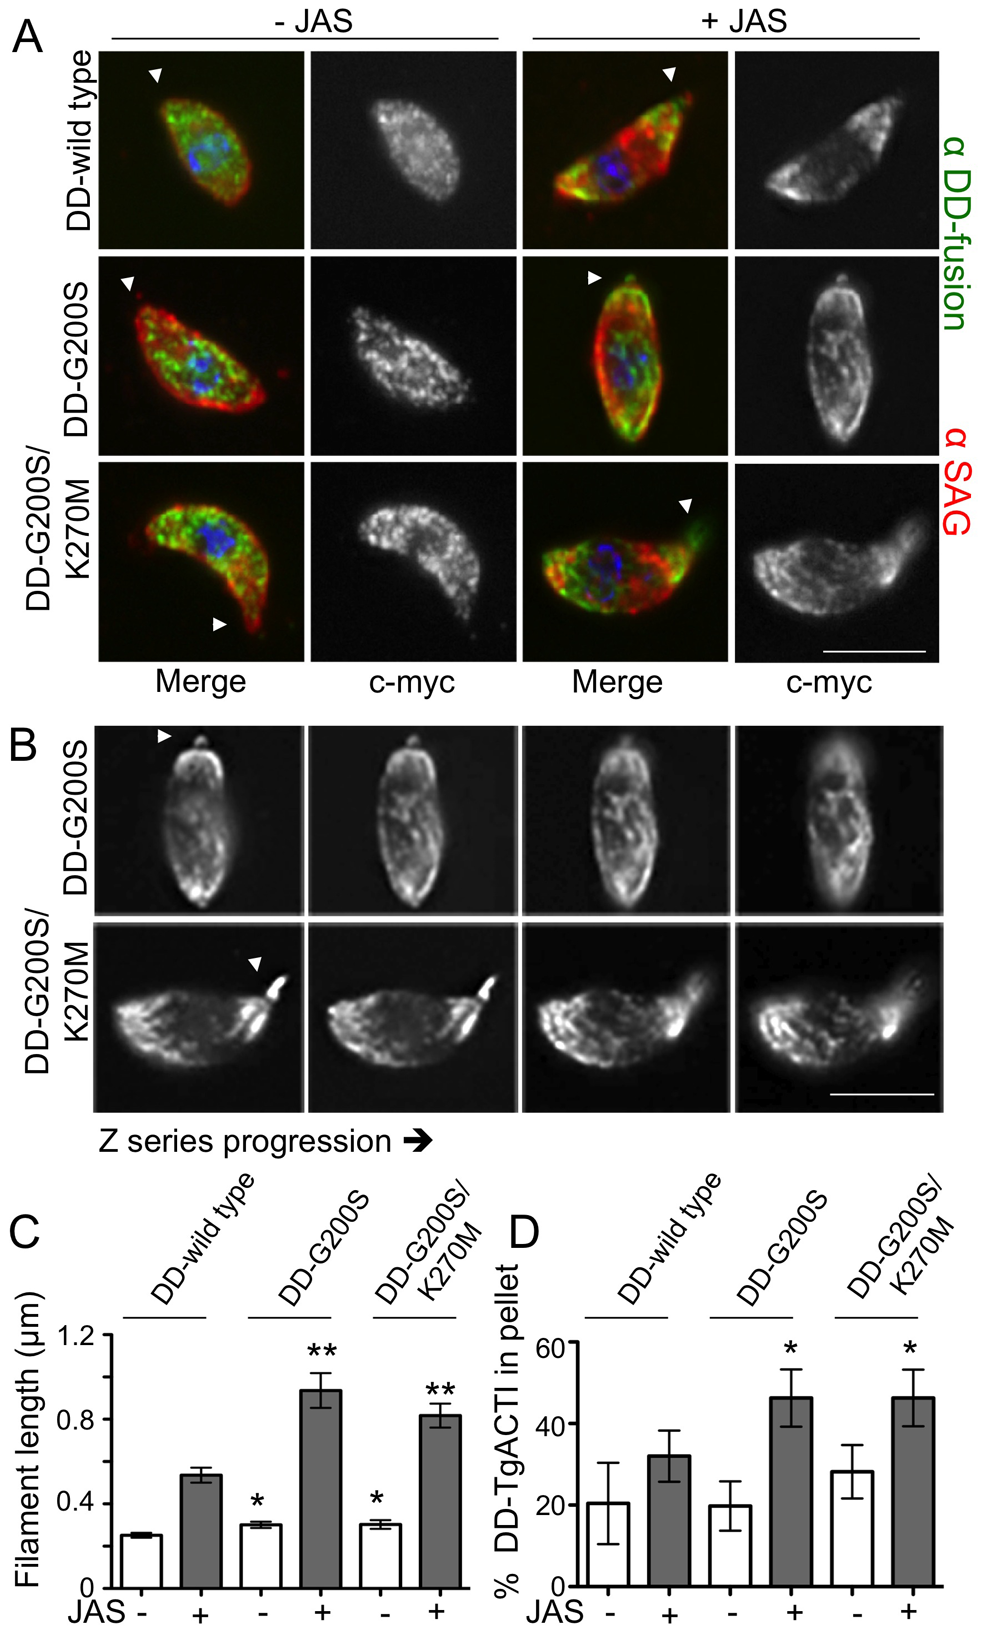 Stabilized actin alleles are more sensitive to JAS-stabilization than endogenous TgACTI in <i>Toxoplasma</i>.